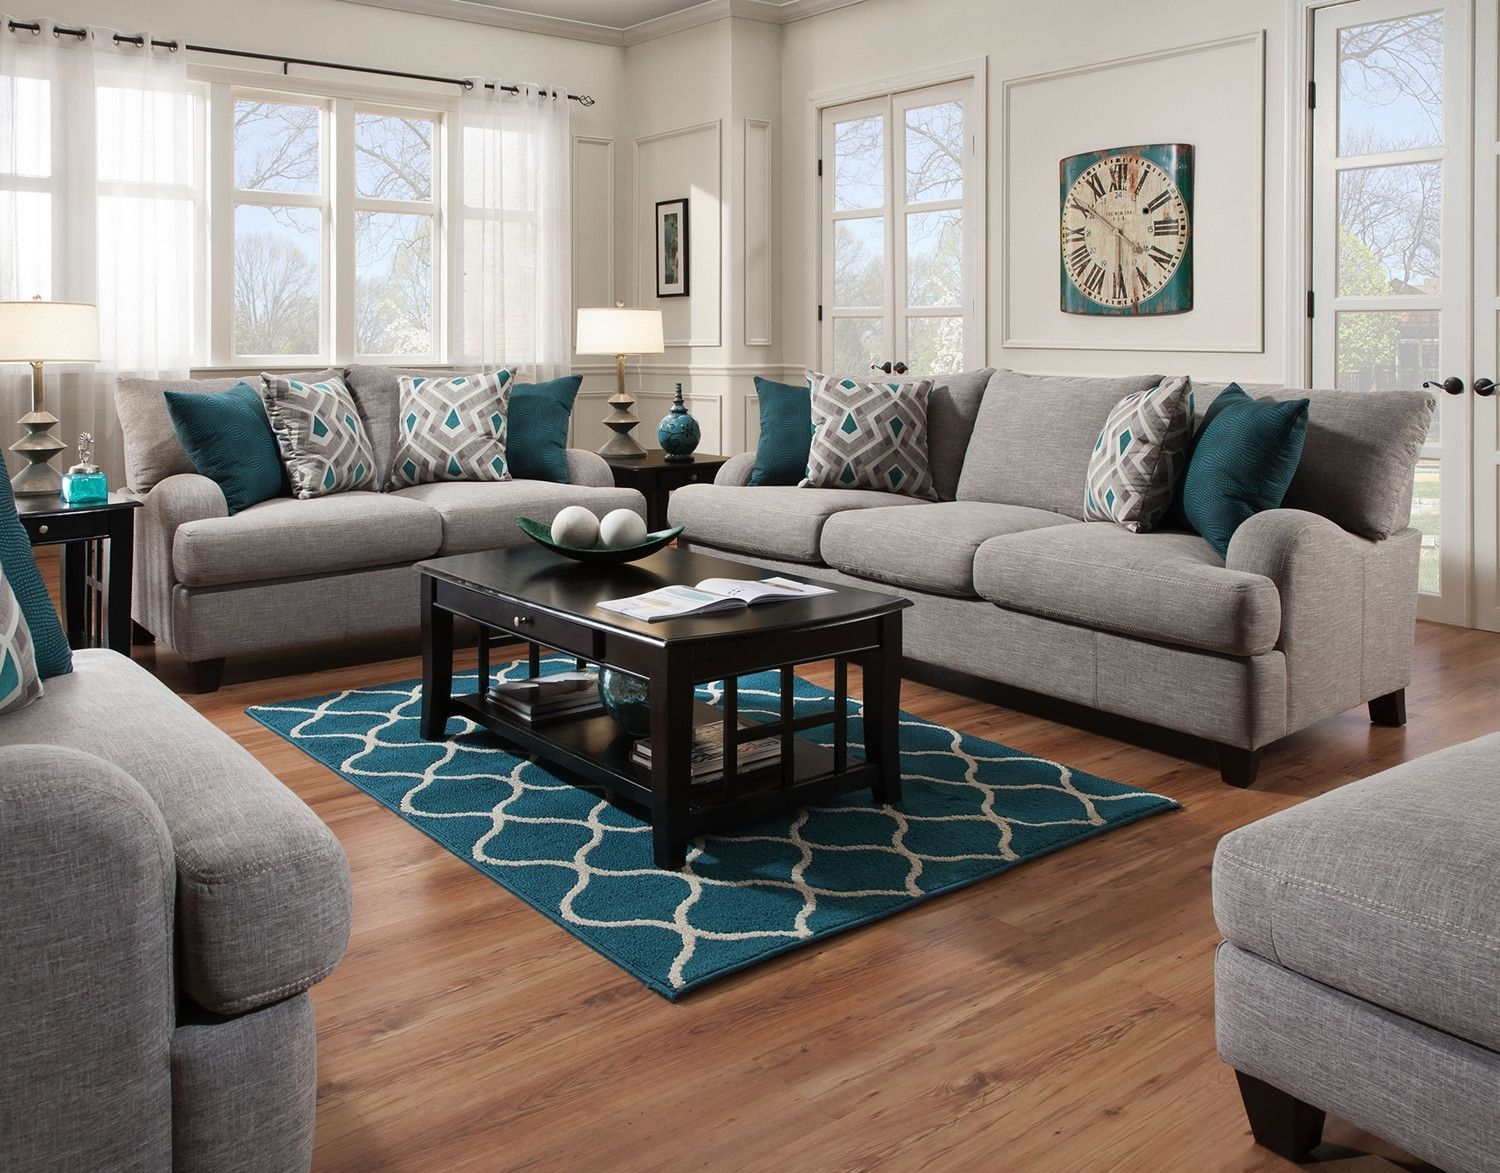 7 - The Paradigm Living Room Set - Grey  Teal living rooms